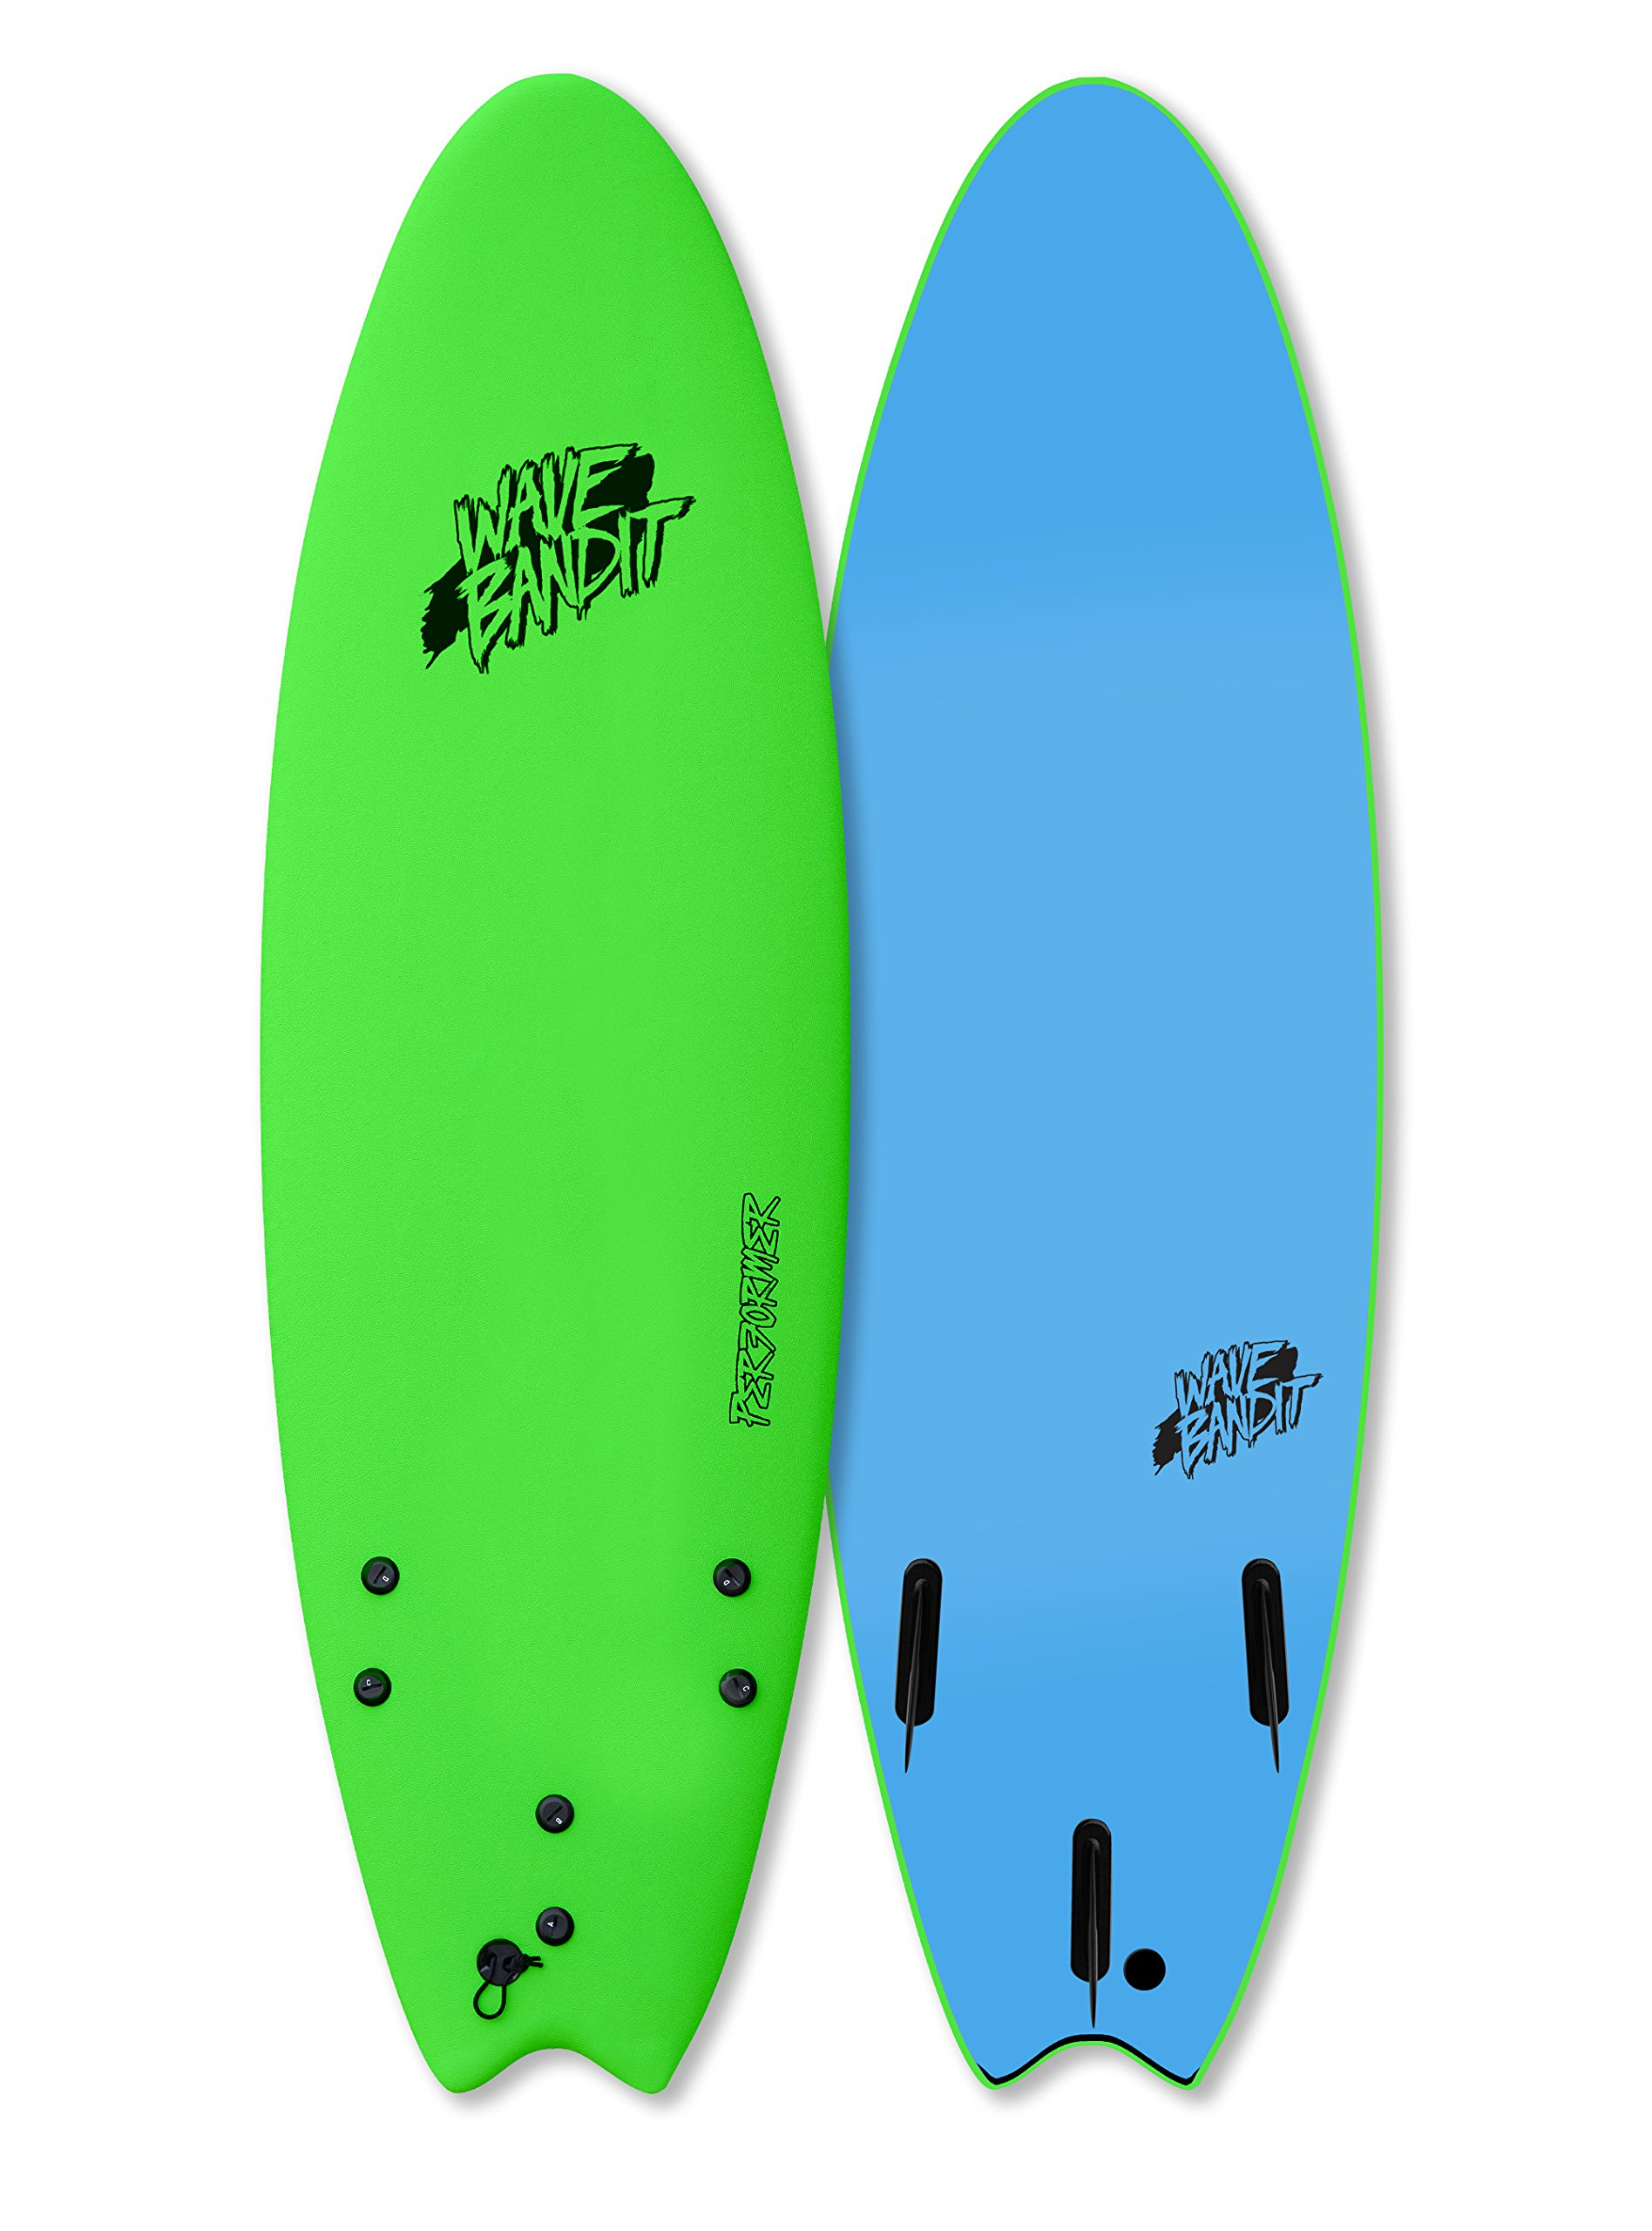 Wave Bandit Performer Tri Surfboard, Neon Green, 6'6''